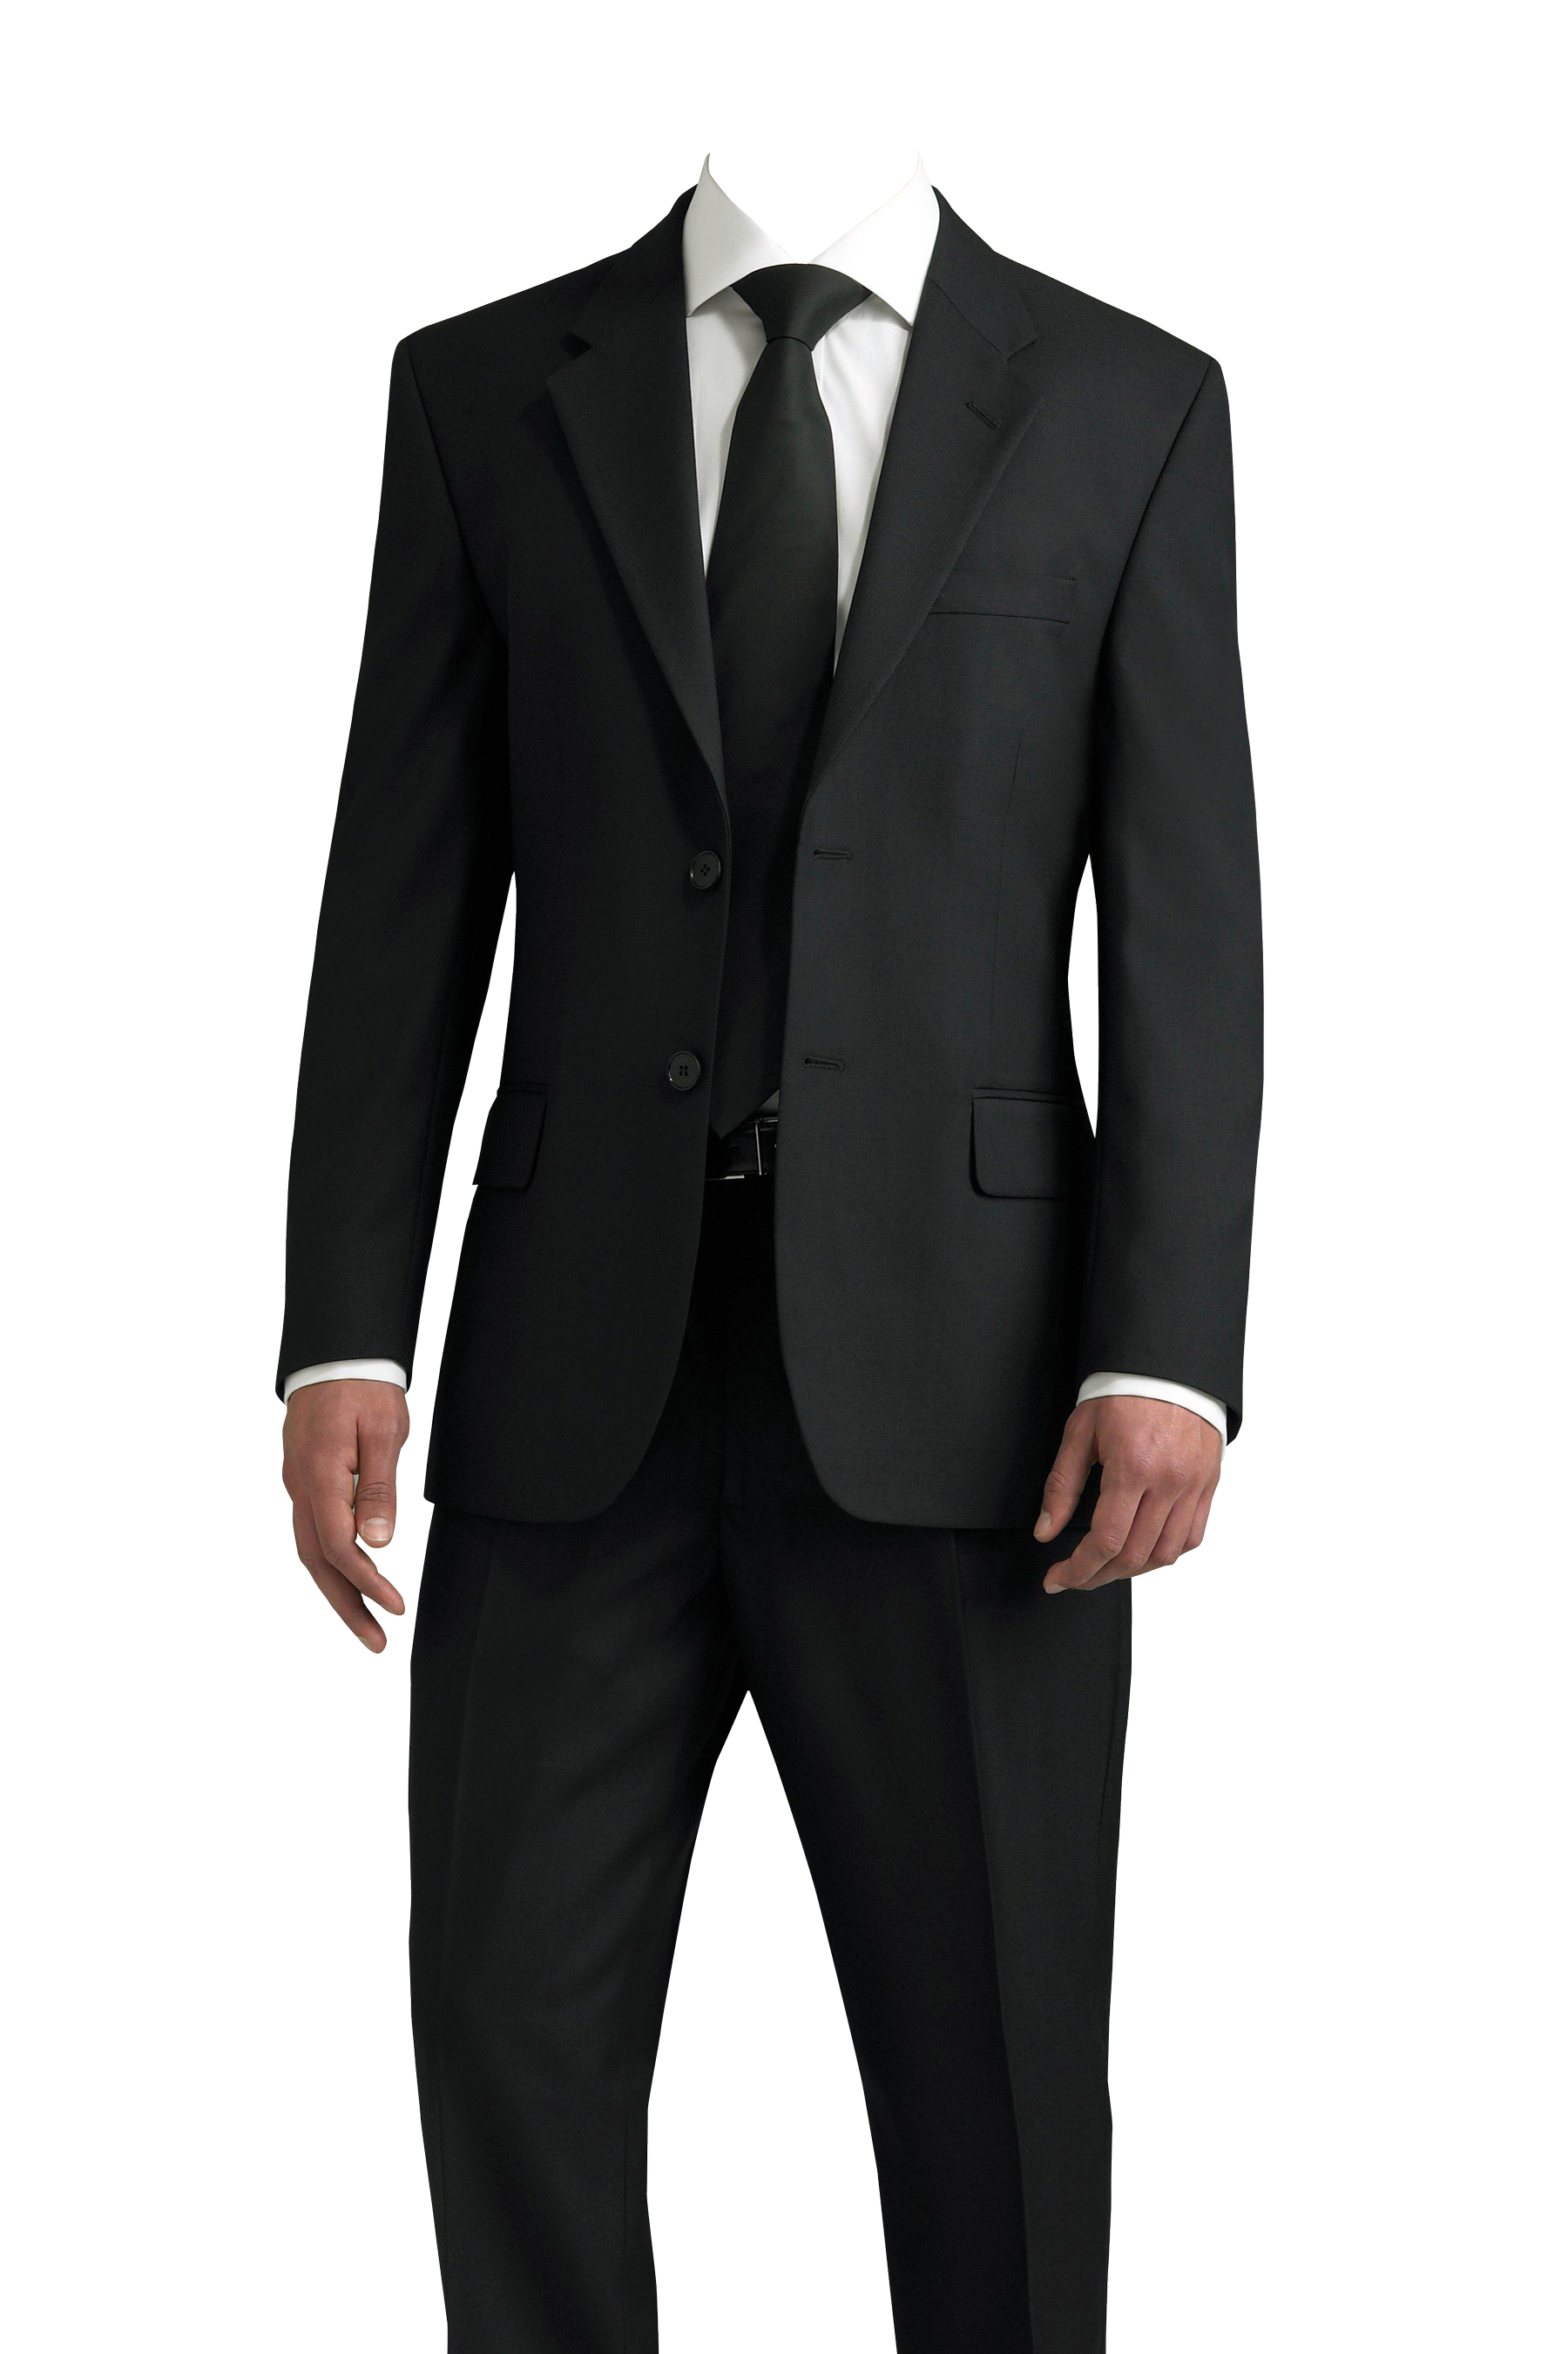 suit png image photo pose for man psd free photoshop photoshop backgrounds free suit png image photo pose for man